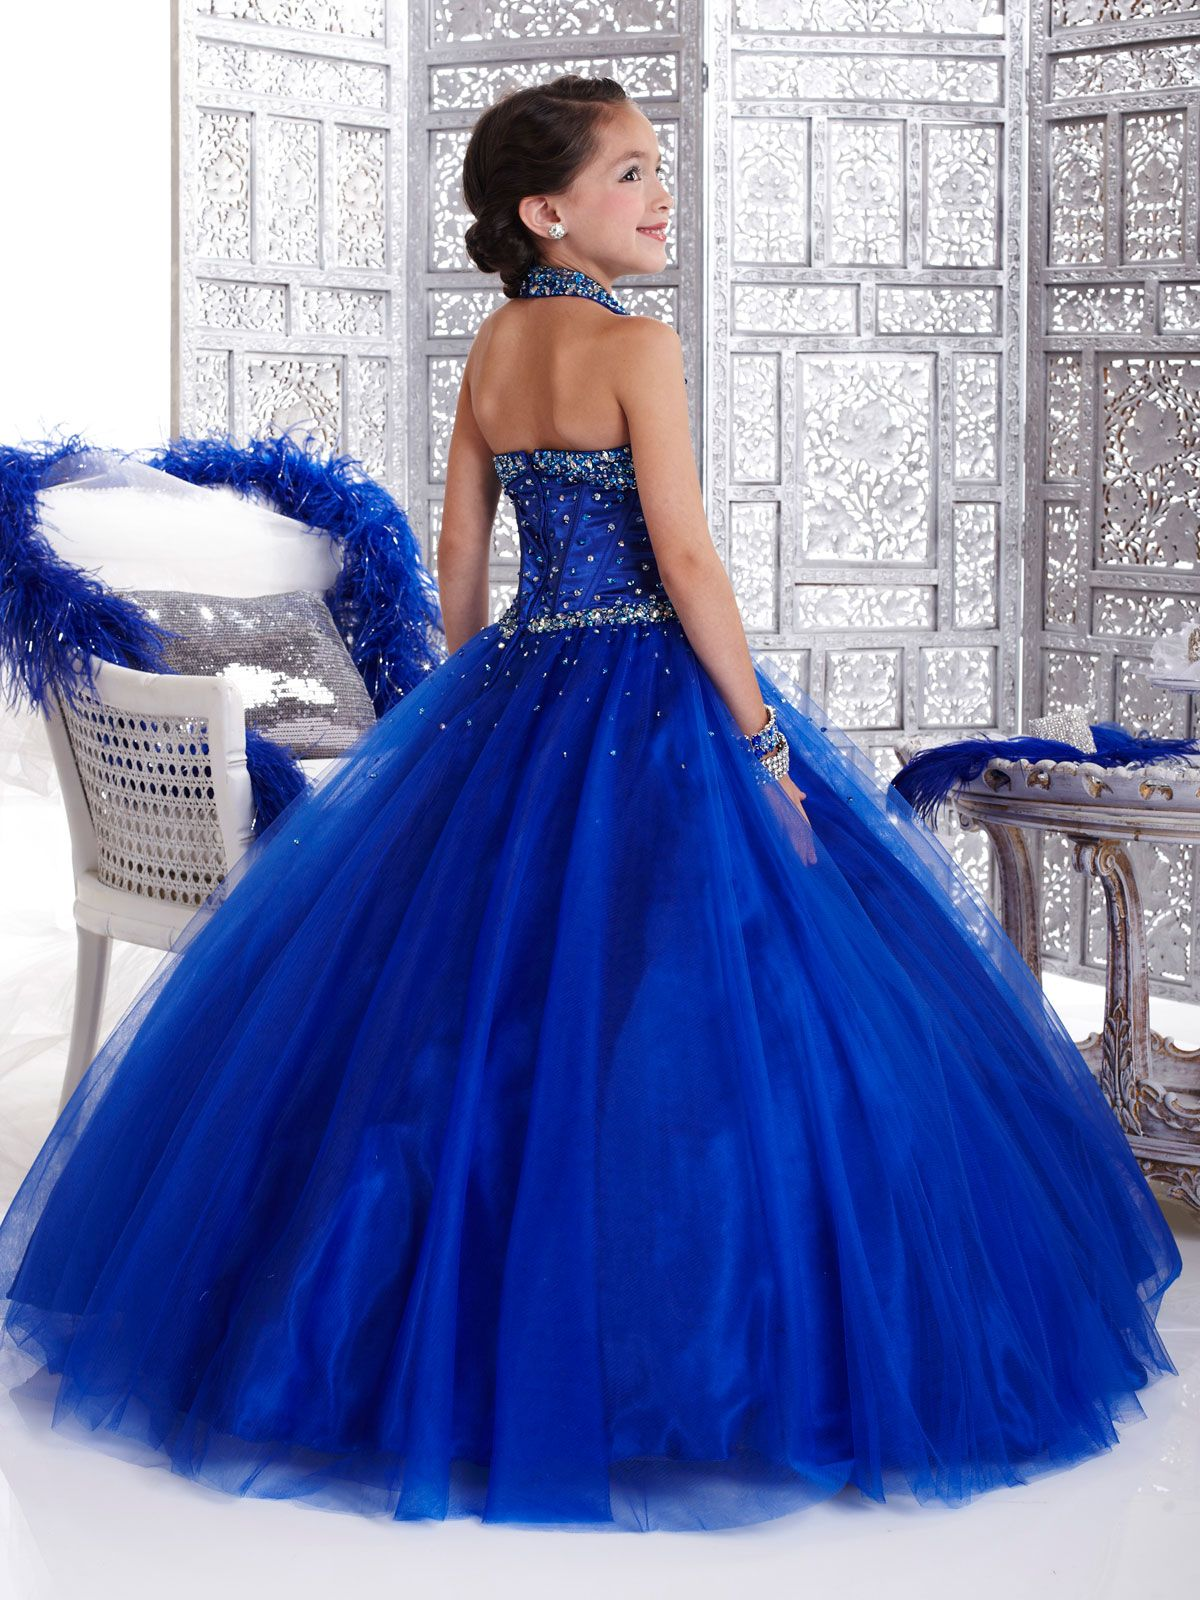 Back view Ball Gown Halter Tulle Pageant Dress Tiffany Glitz Girls ...